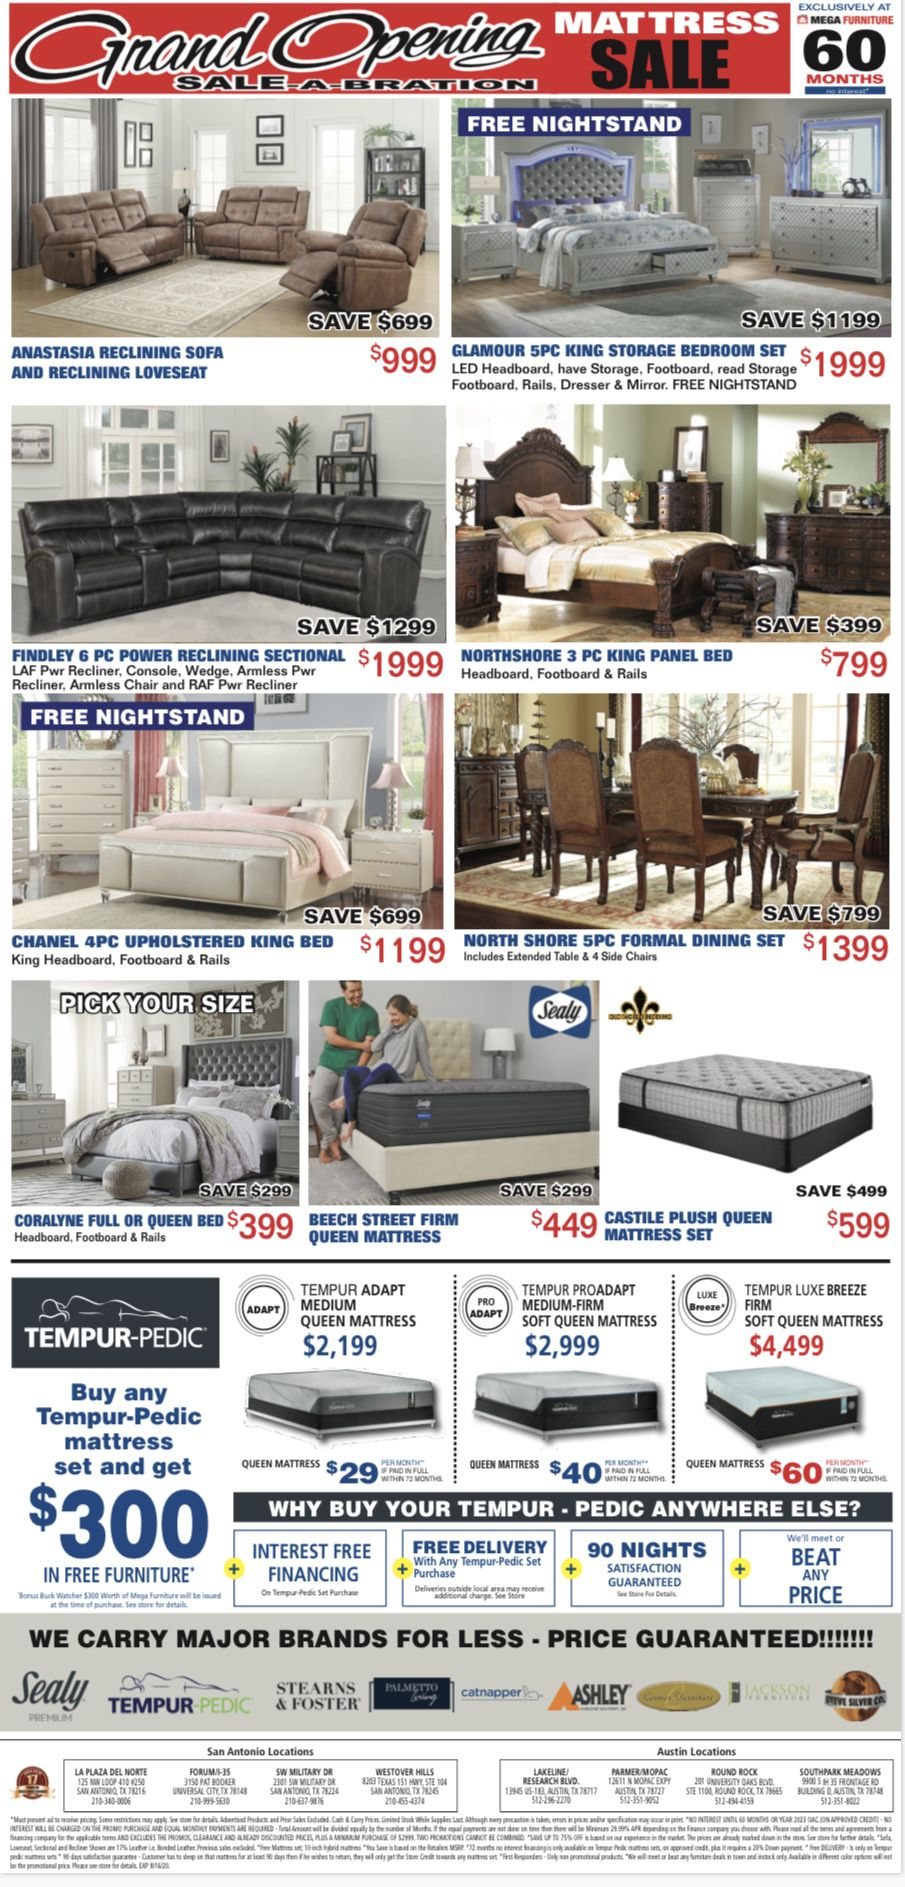 It S Time To Welcome Our Newest Location With A Grand Sale A Bration Save Hundreds On Full Bedroom Sets Mega Furniture Mattress Sales Reclining Sectional